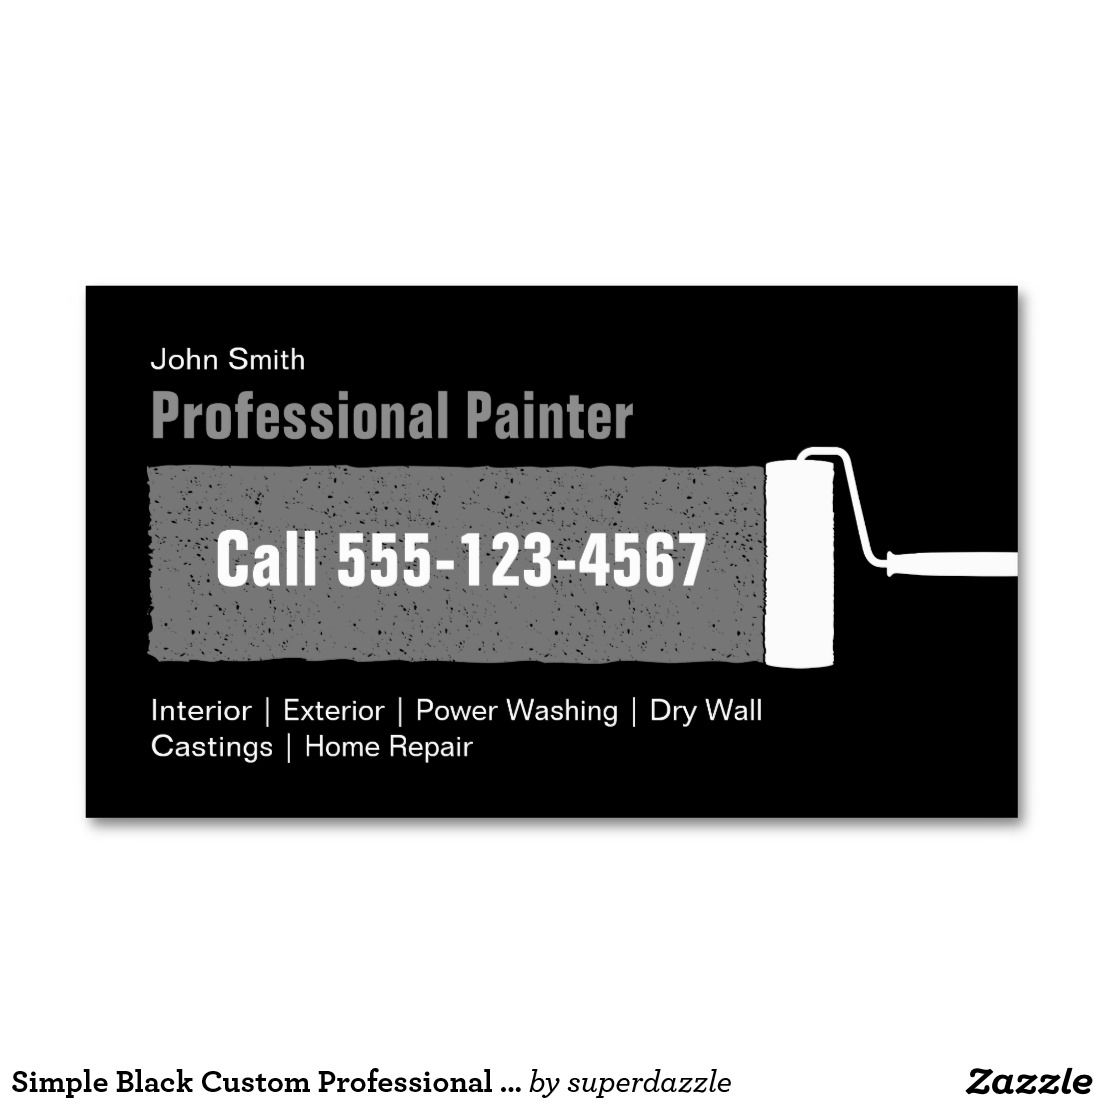 Simple Black Custom Professional Home Painting Business Card ...